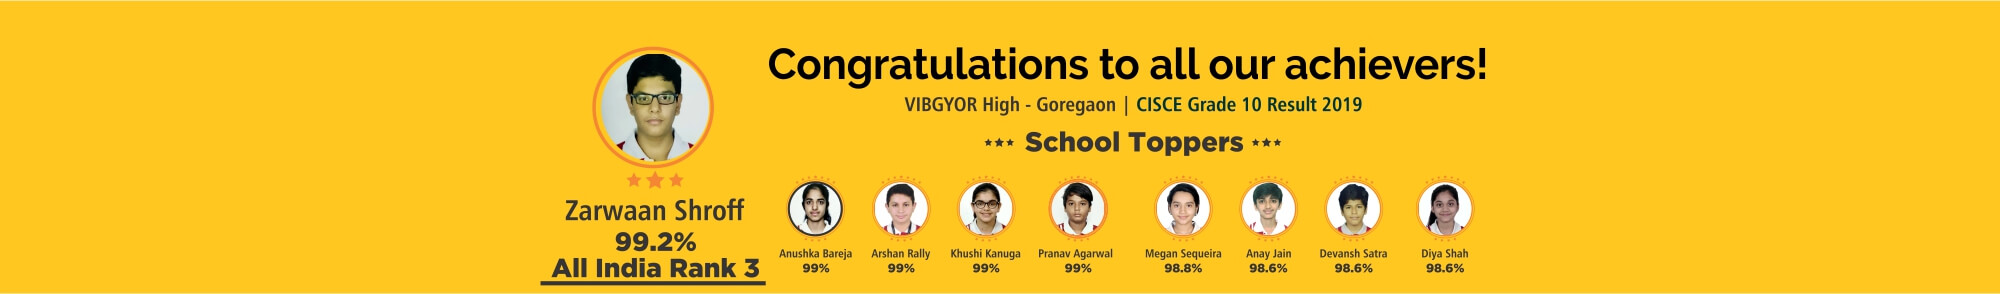 VIBGYOR High Kids